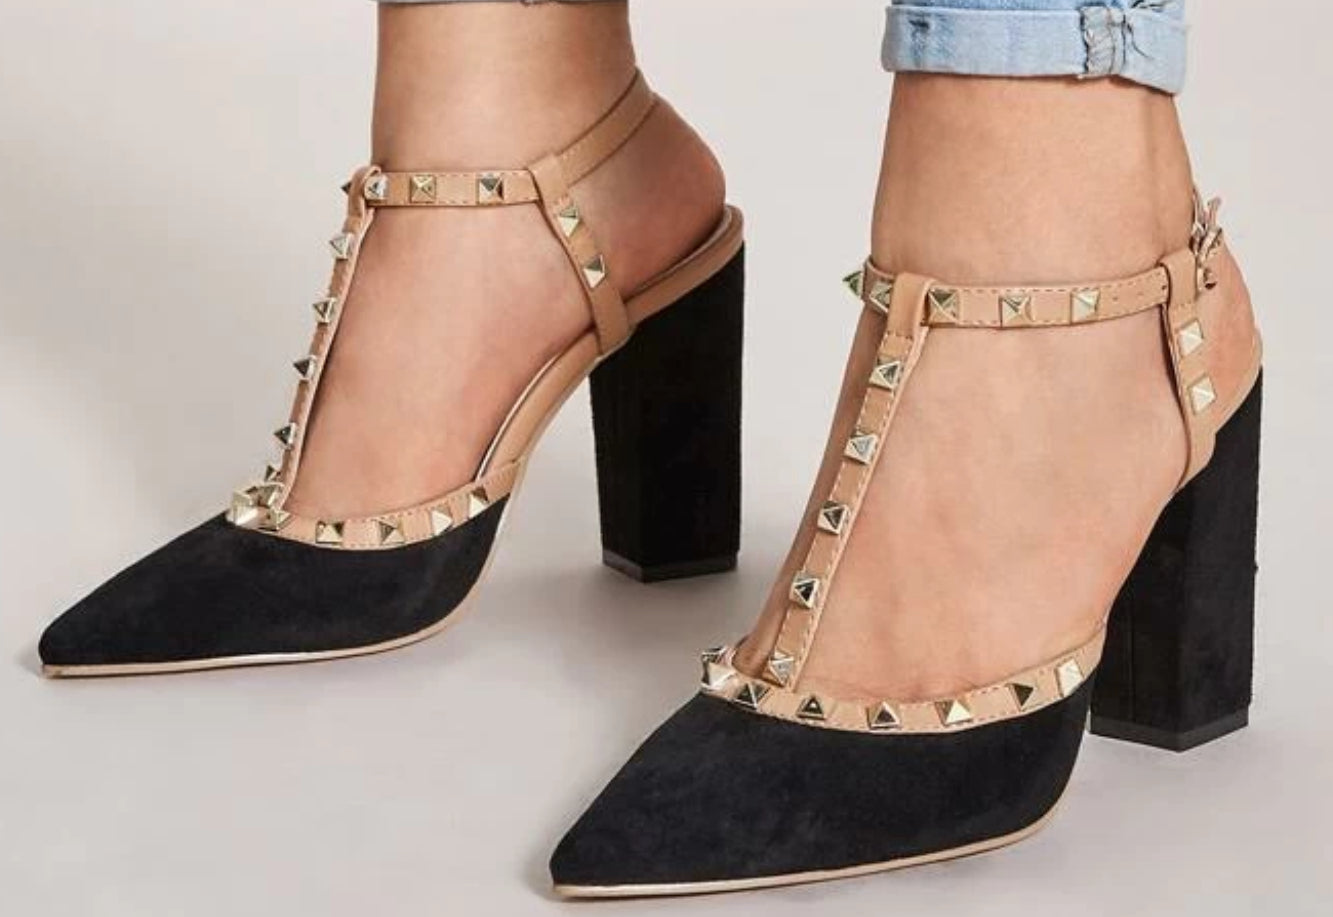 Sass - High heel - Black/Tan